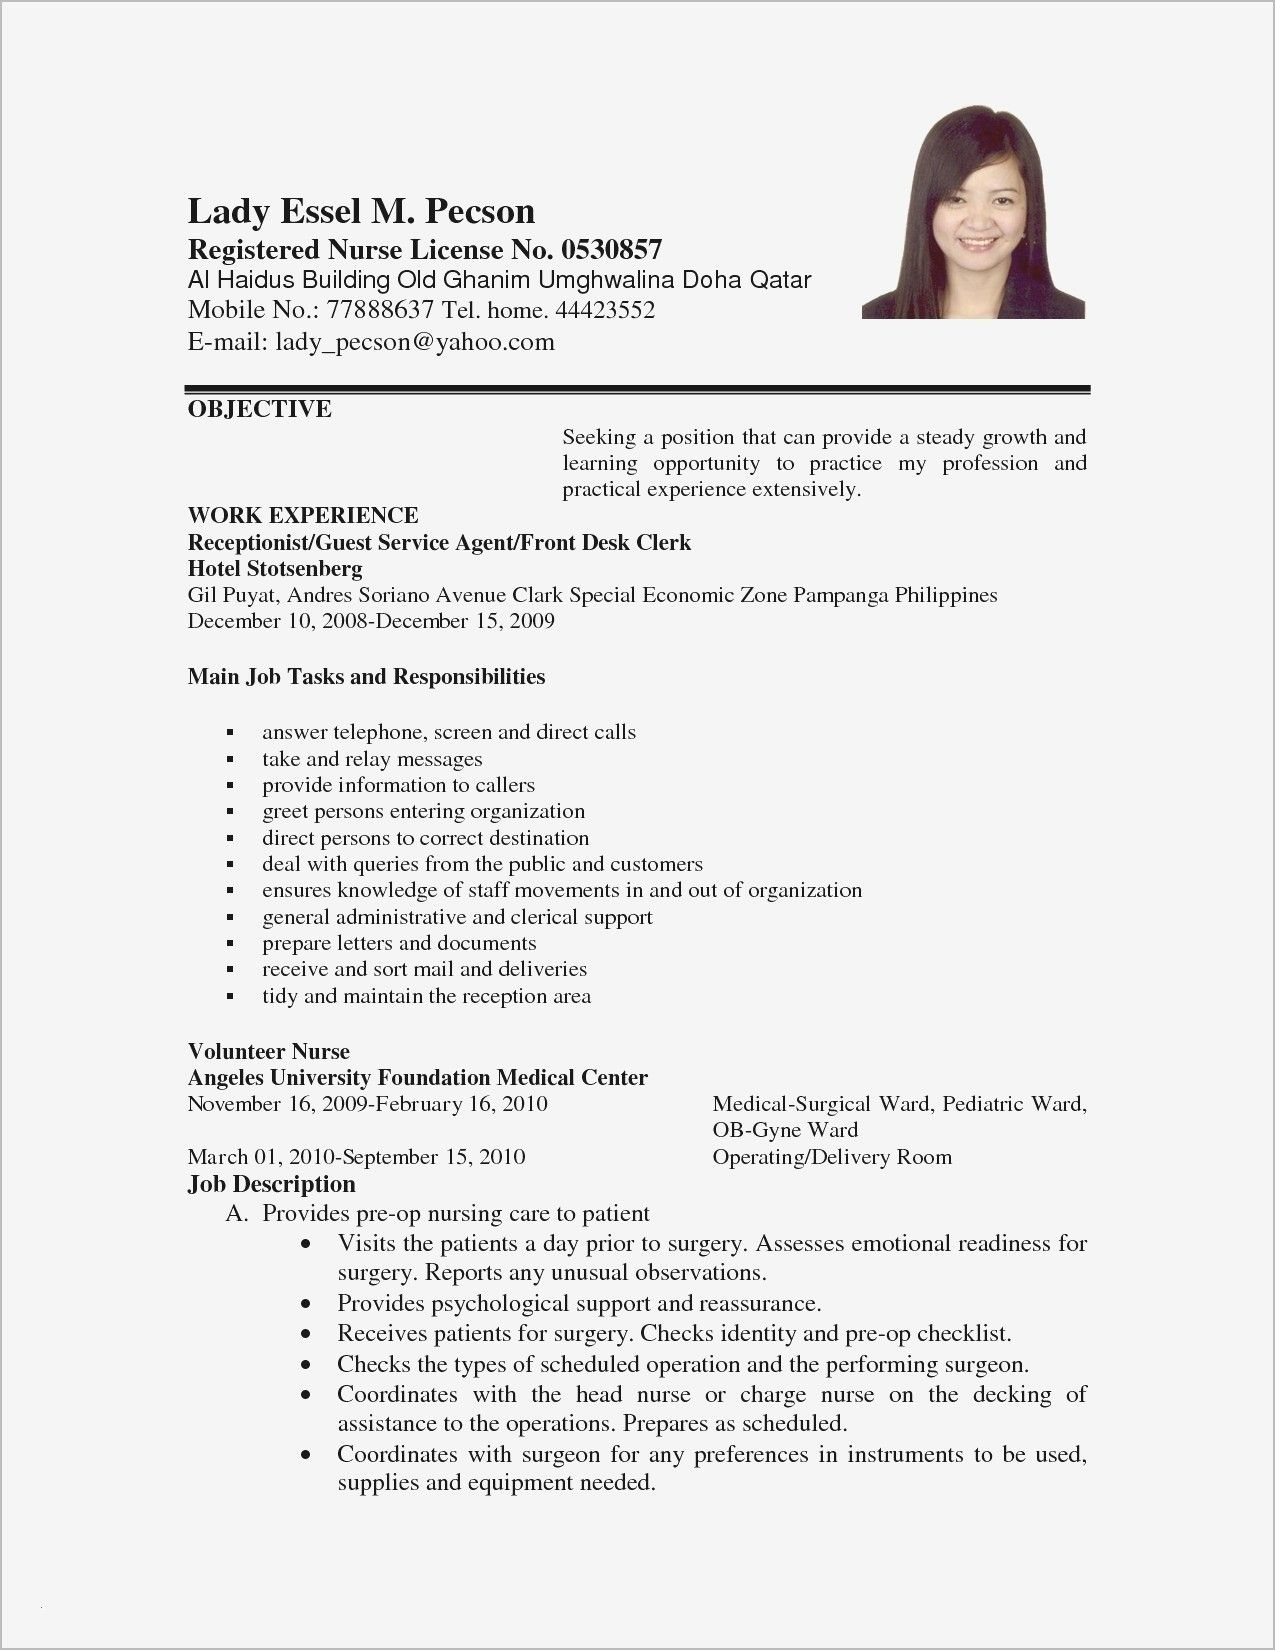 Download New Sample Resume Letter For Job Lettersample